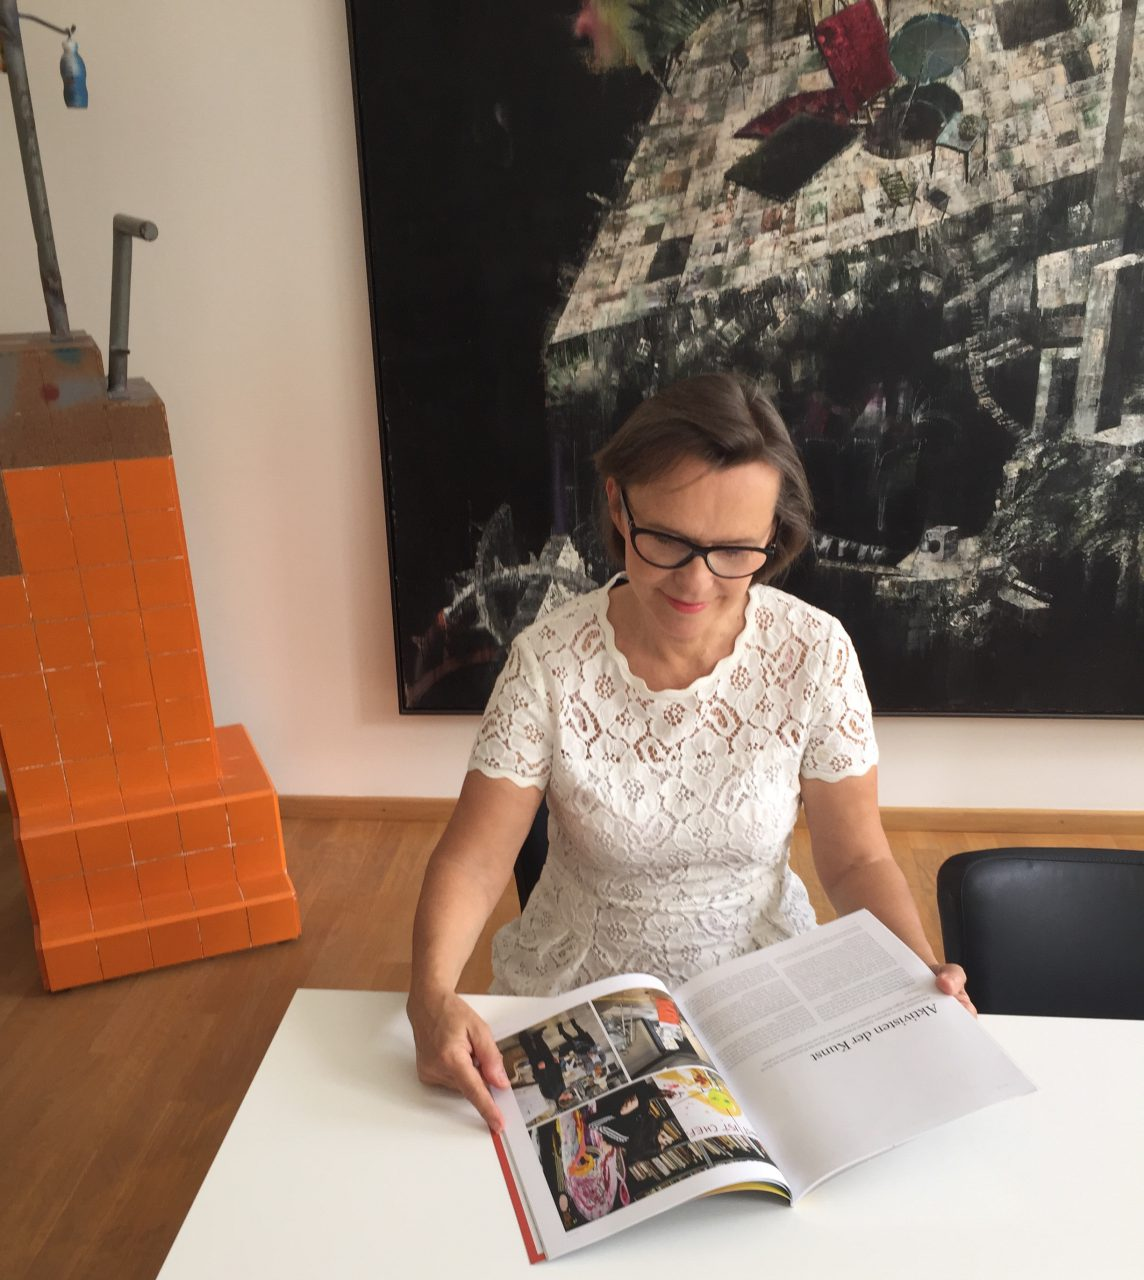 Our founder reading an article about Artitious in the latest DISKURS magazine